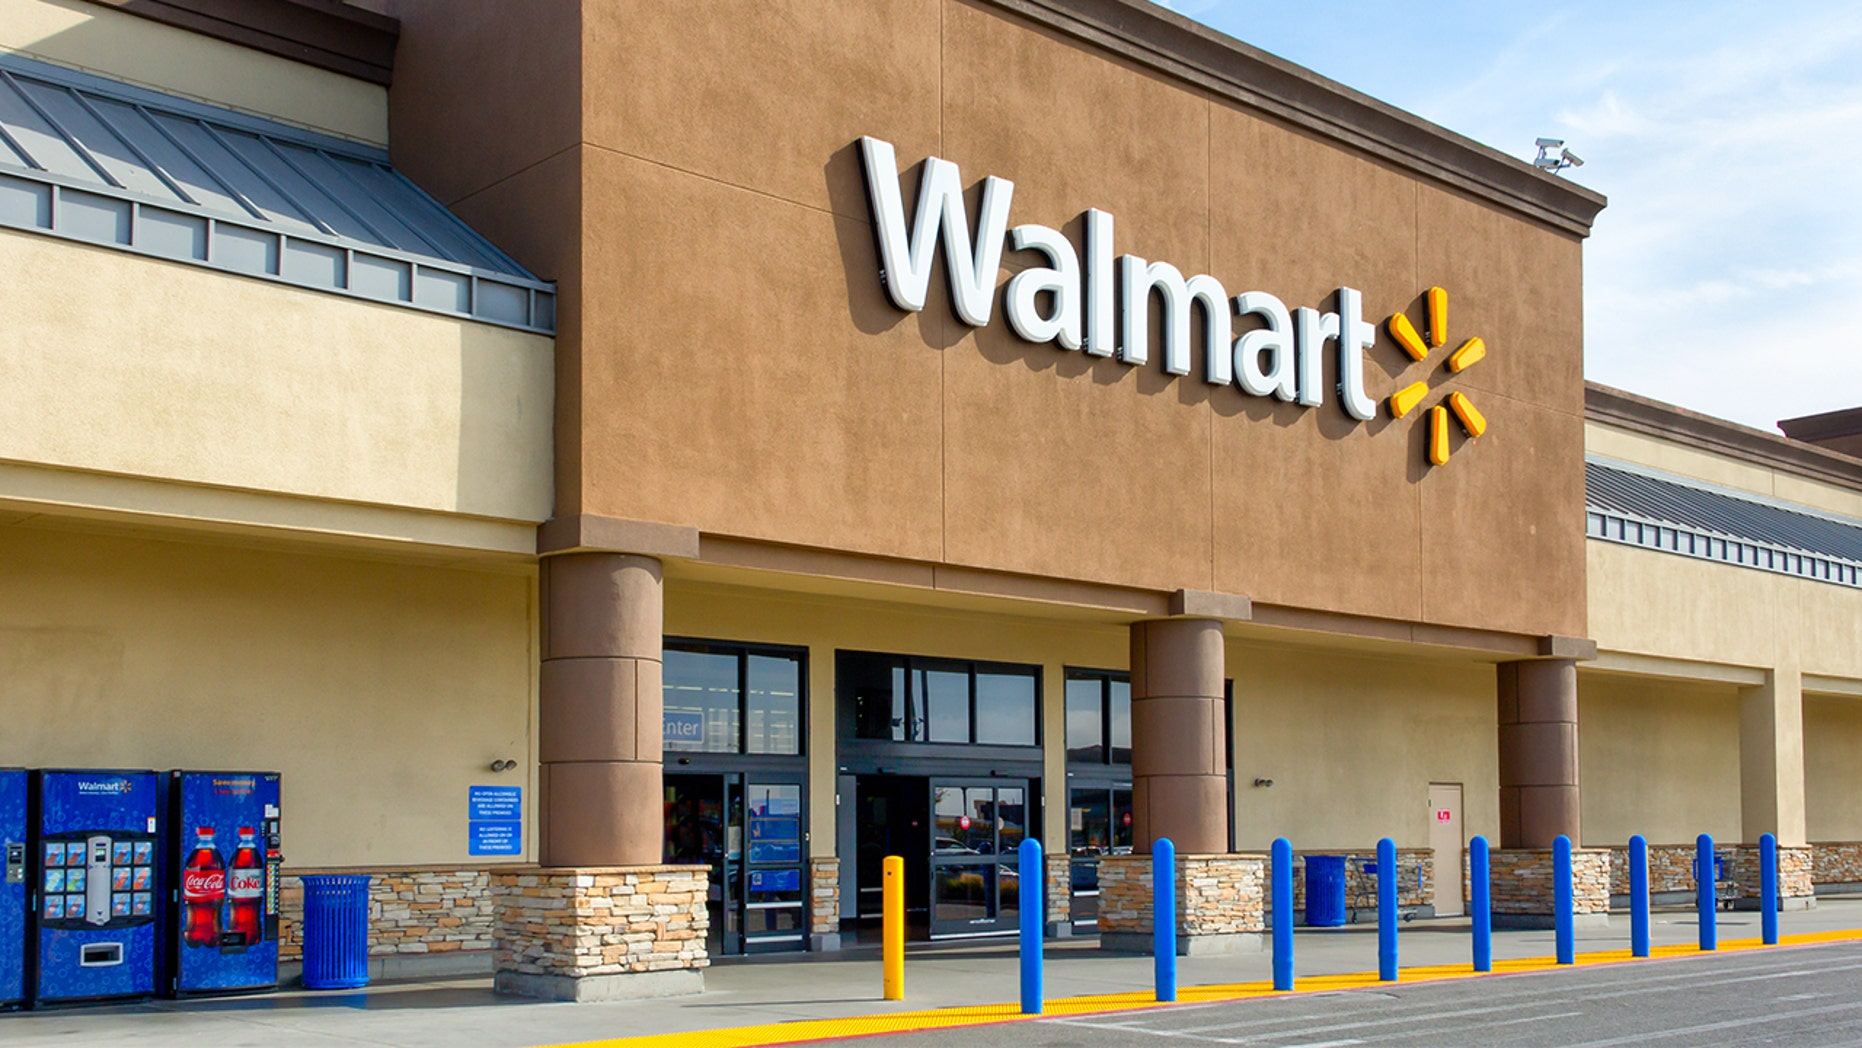 A mystery man who called himself Santa Claus paid for everyone's layaway bills at a Walmart in Vermont.